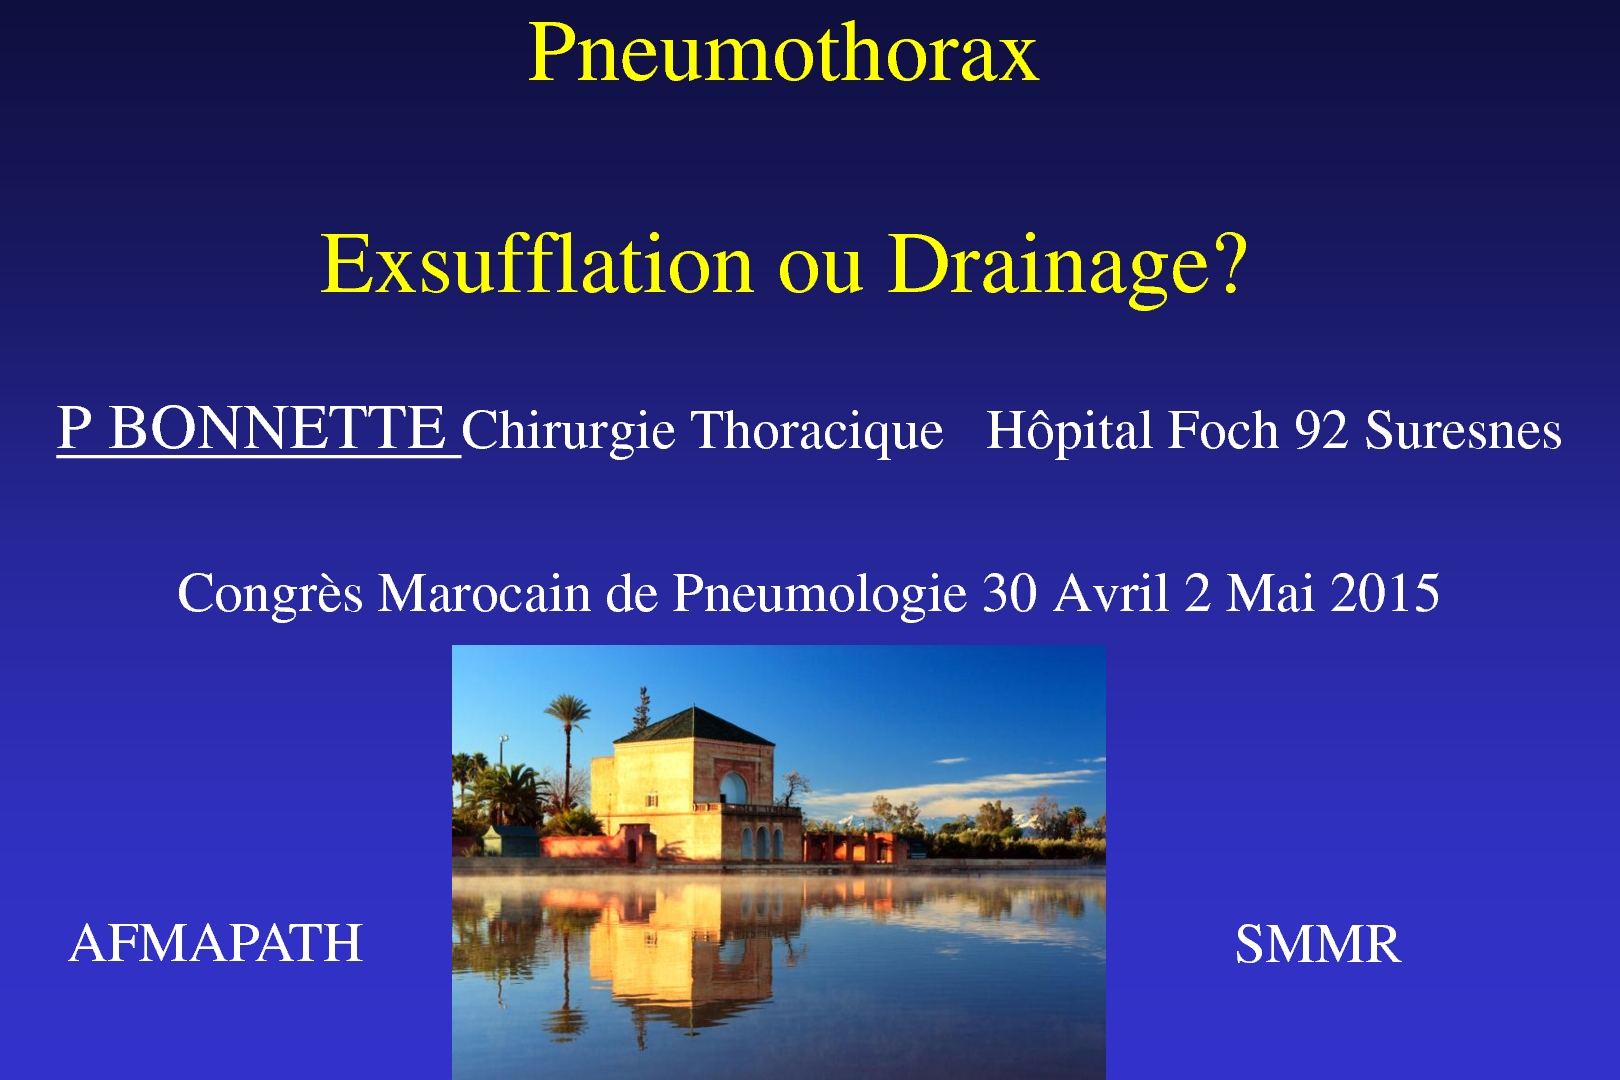 Pneumothorax Exsufflation vs Drainage. P. BONNETTE